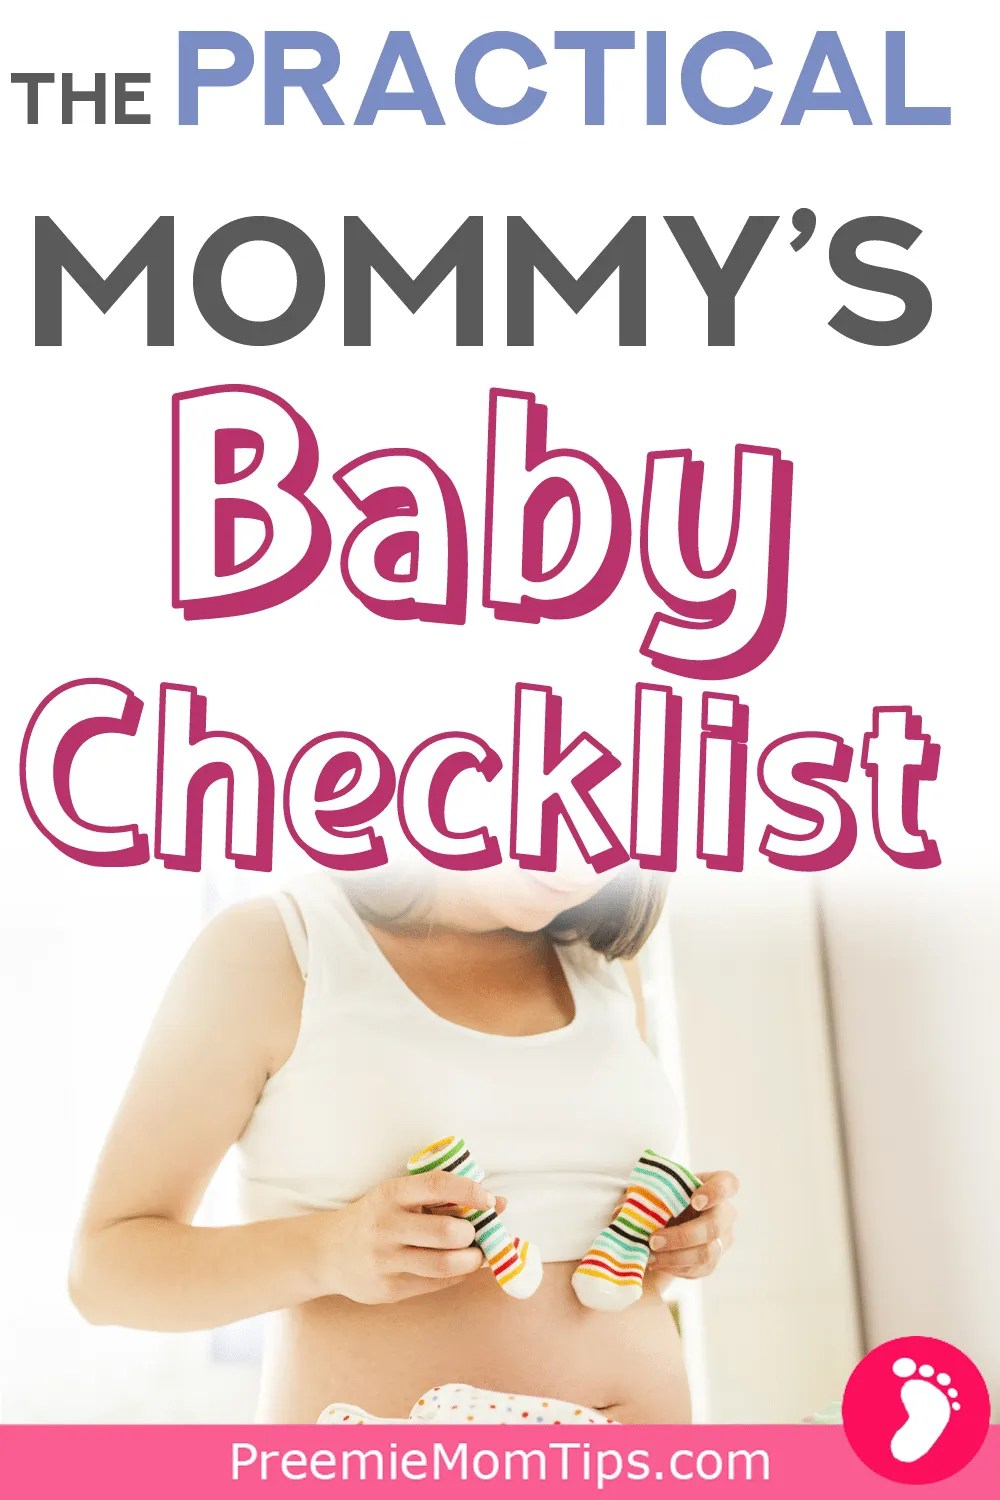 Get every item you need for your baby checklist with this practical guide for new and experienced mommies!